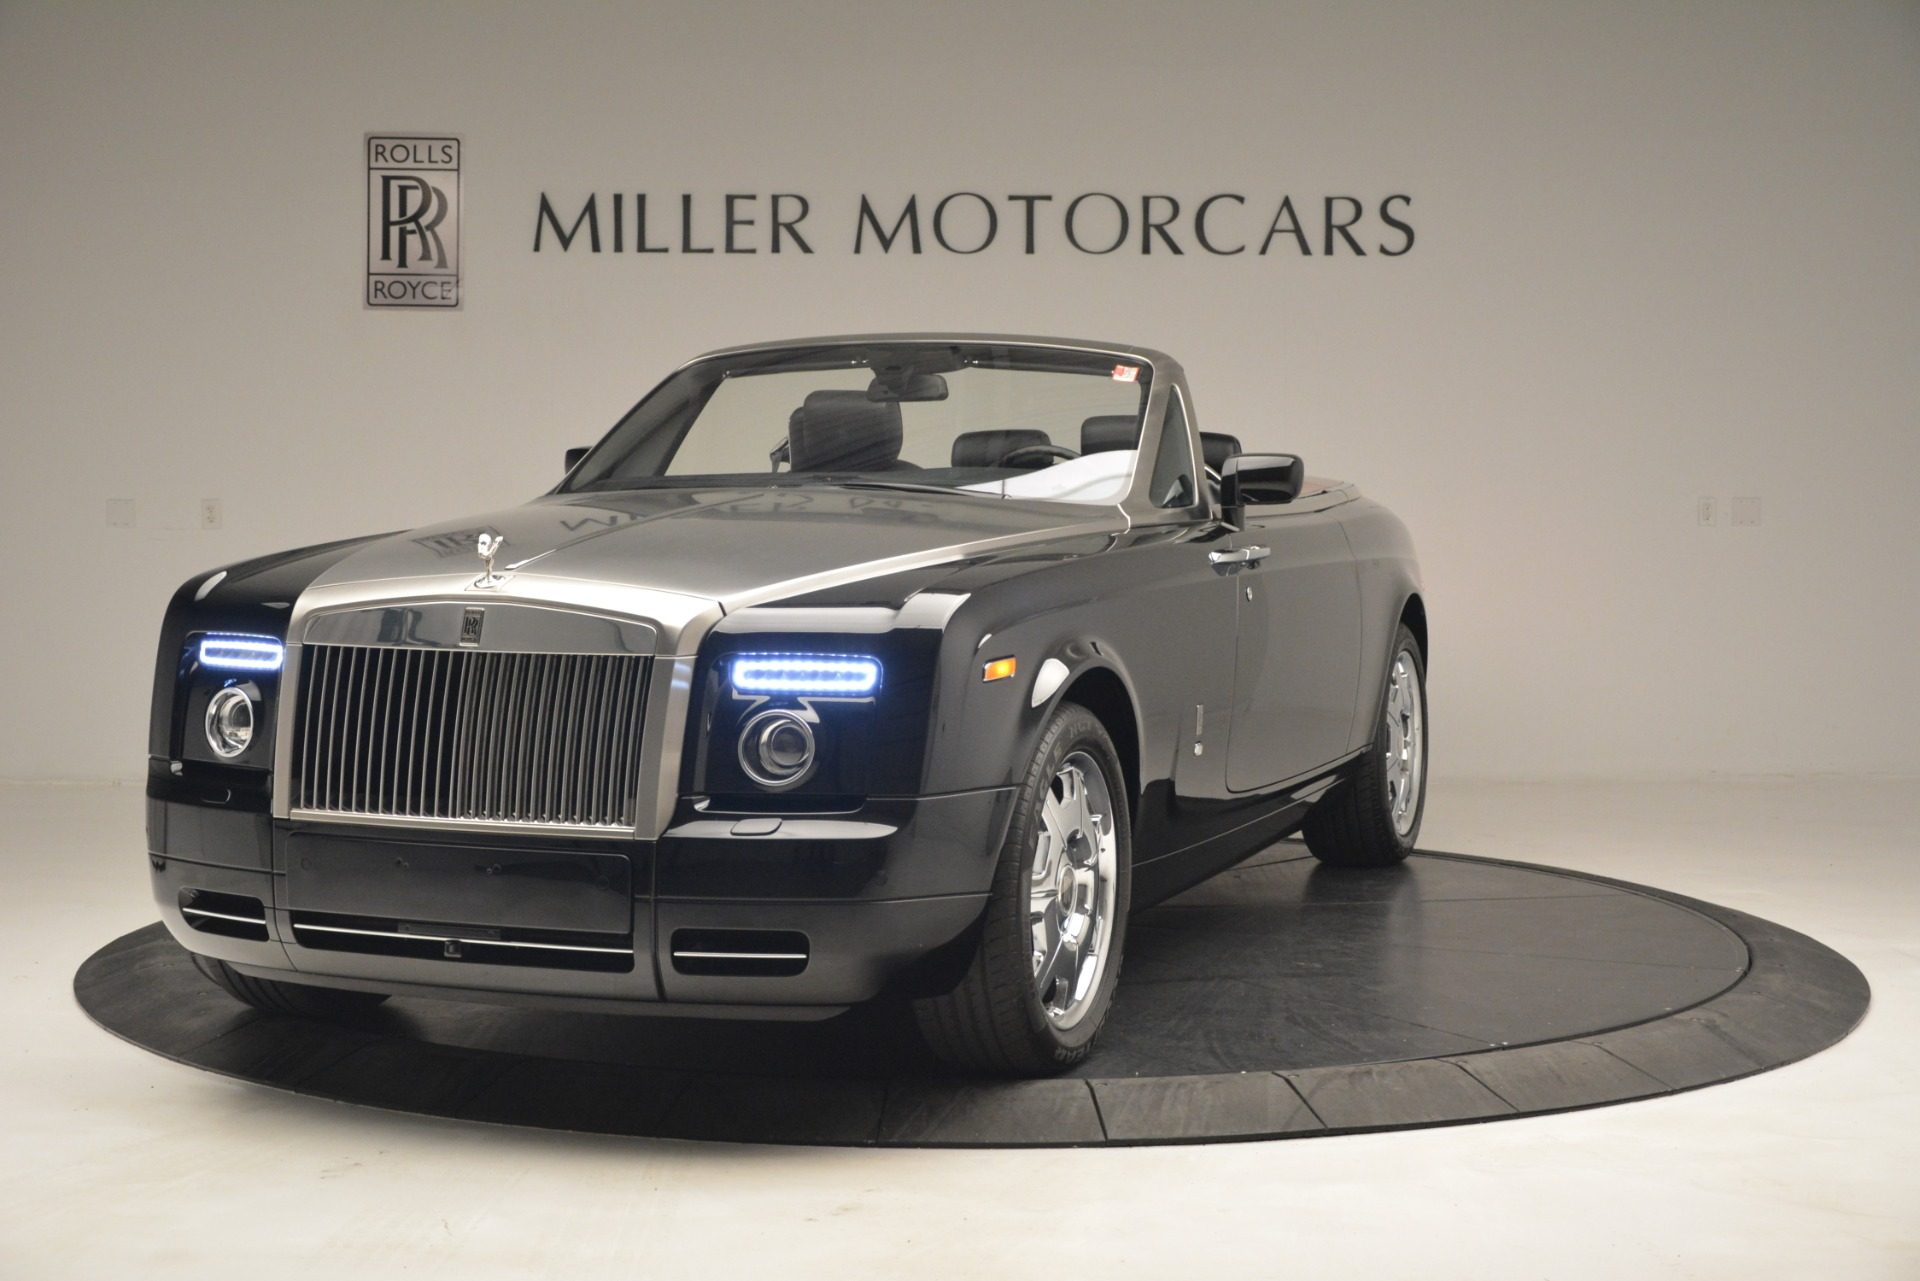 Used 2008 Rolls-Royce Phantom Drophead Coupe for sale Sold at Rolls-Royce Motor Cars Greenwich in Greenwich CT 06830 1